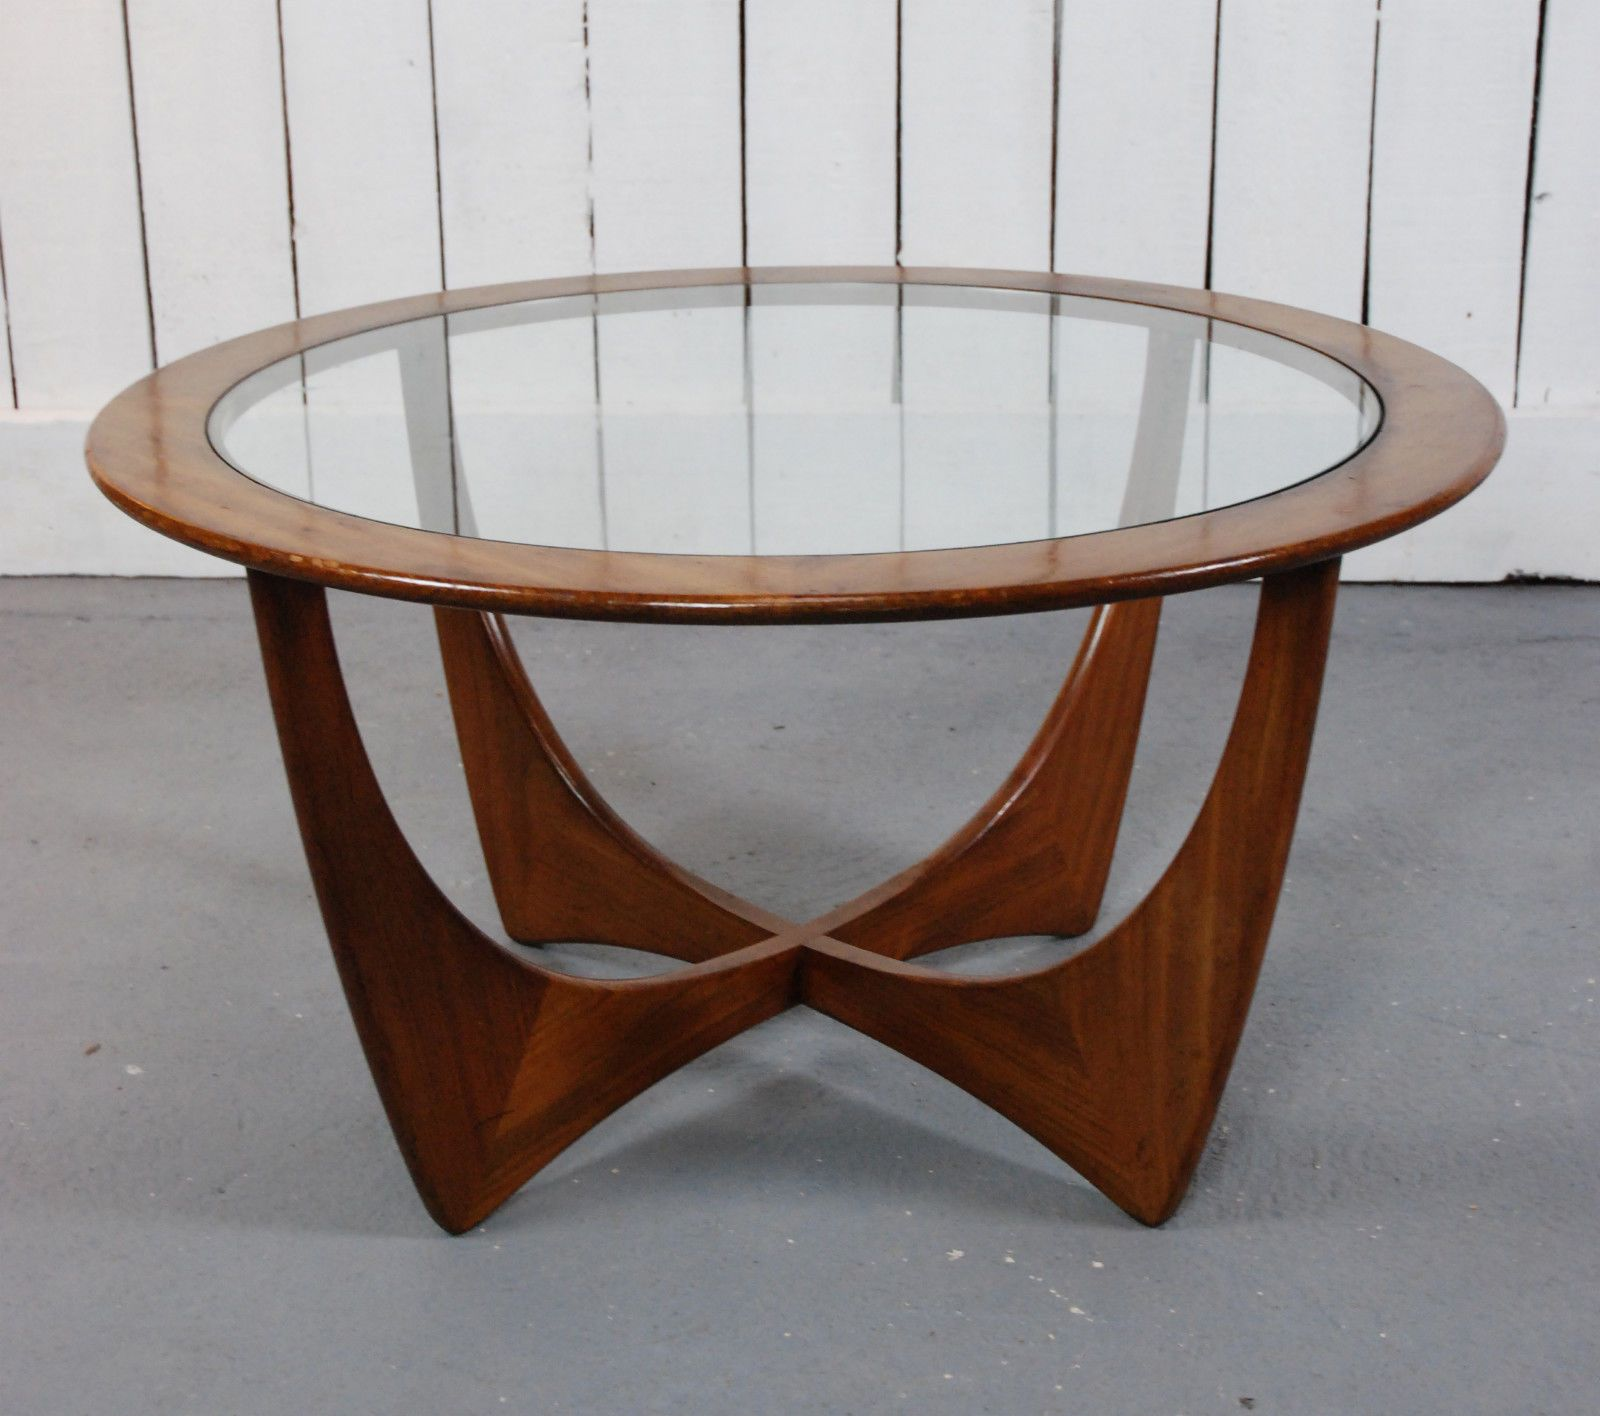 Vintage retro ercol drop leaf round dining kitchen table ebay - Retro Teak G Plan Astro Coffee Table Vintage Danish Style Round Glass